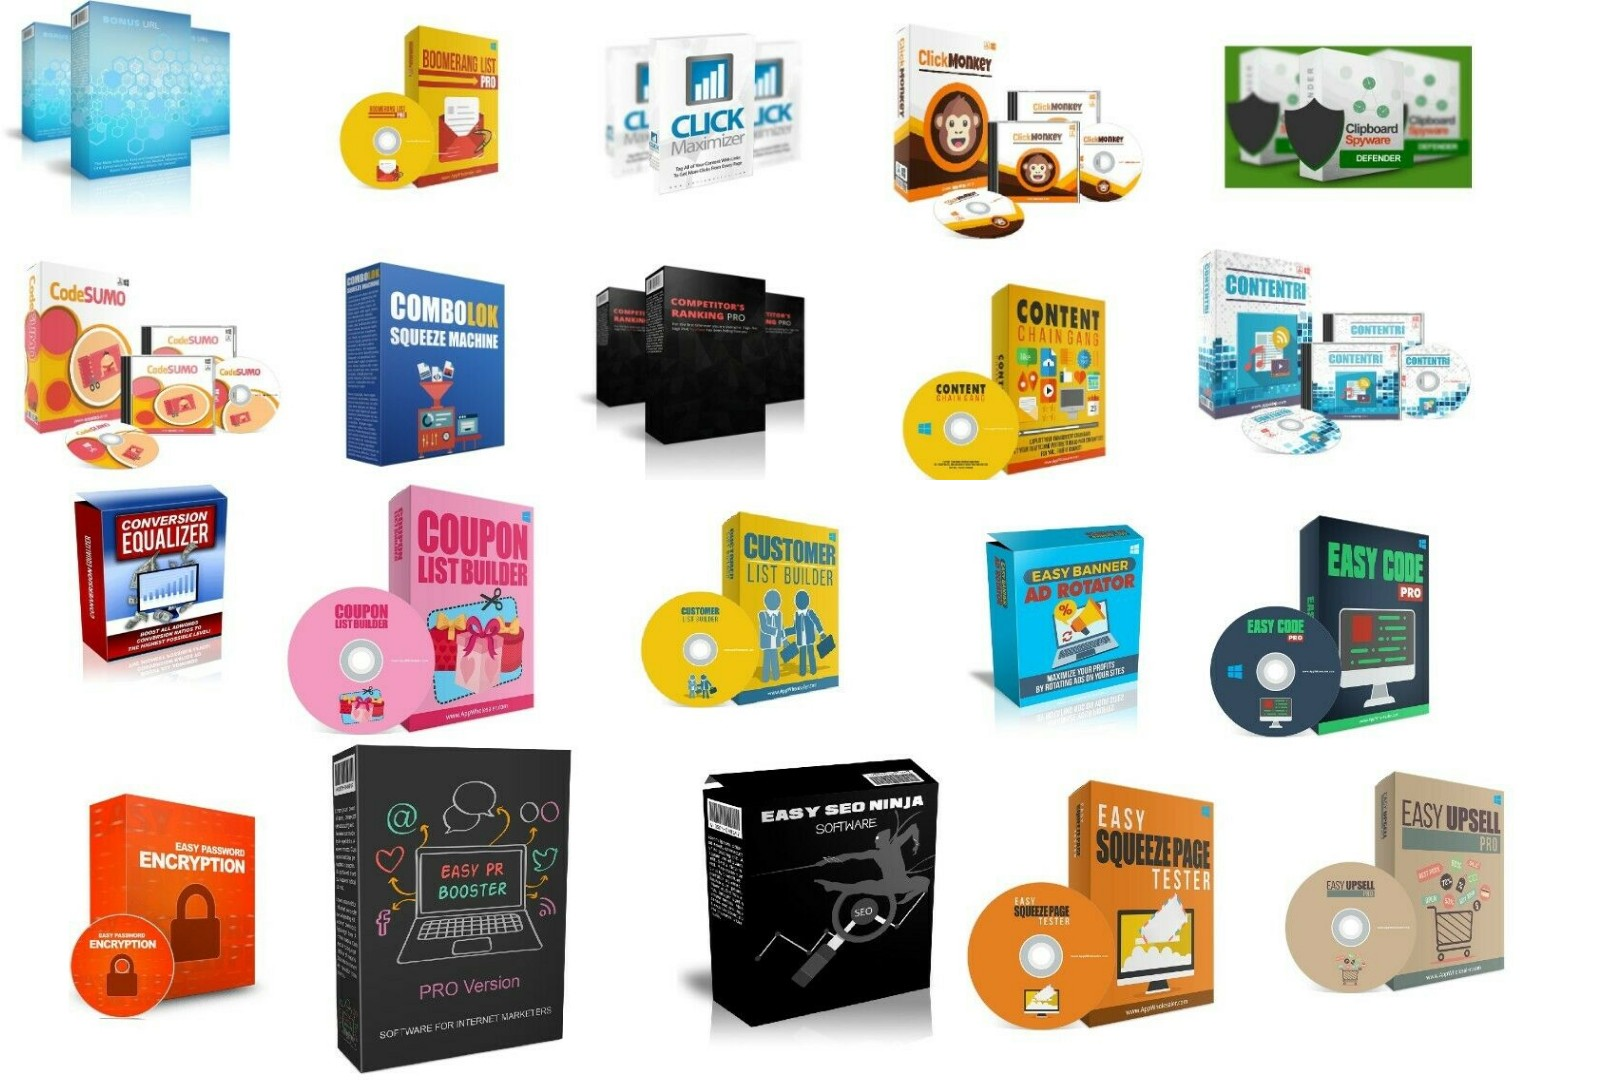 100 Premium Web and Internet Marketing Software Collection With PLR MRR